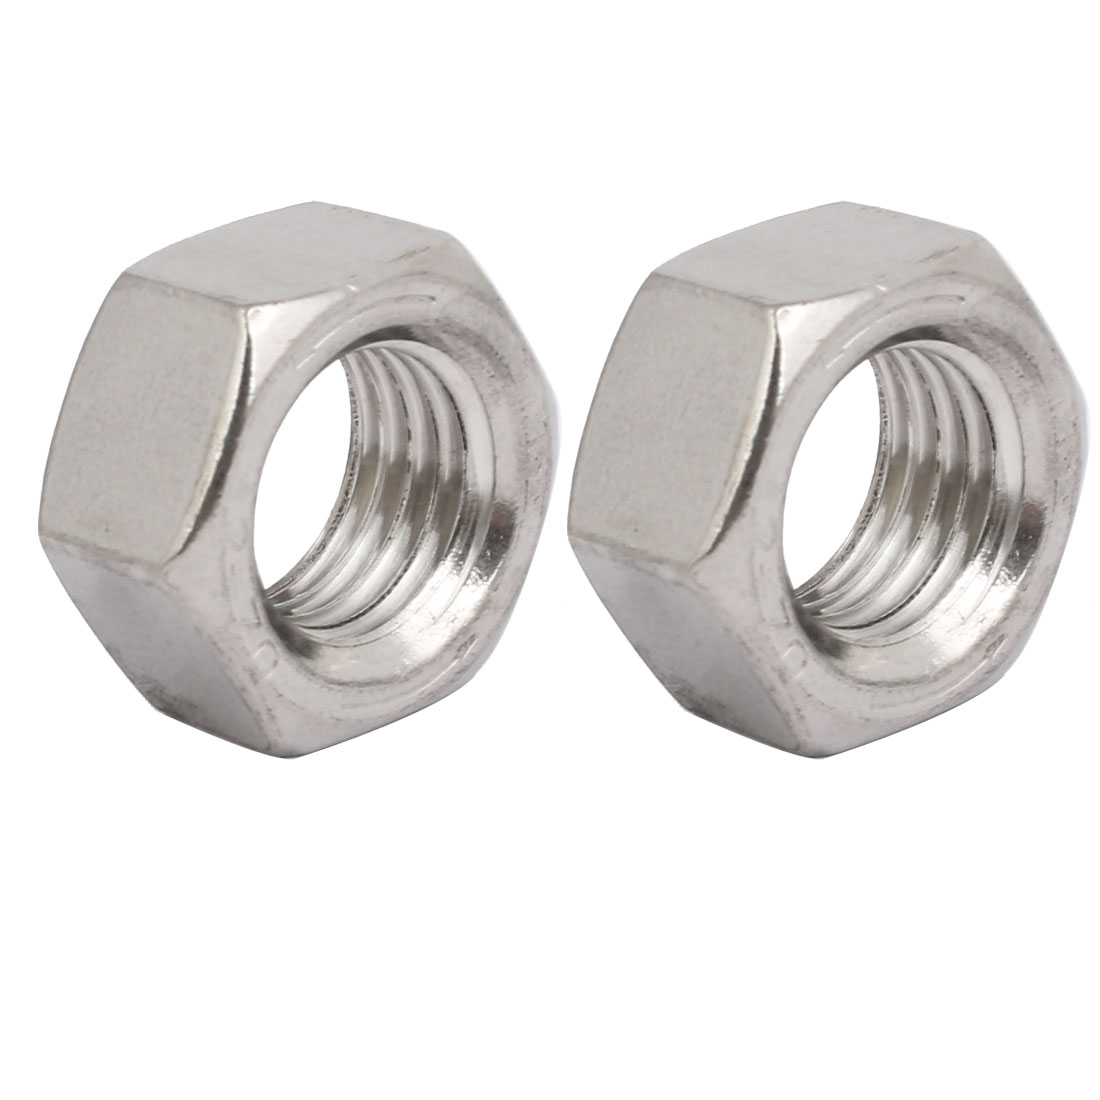 2pcs M20 x 2.5mm Pitch Metric Thread 201 Stainless Steel Left Hand Hex Nuts